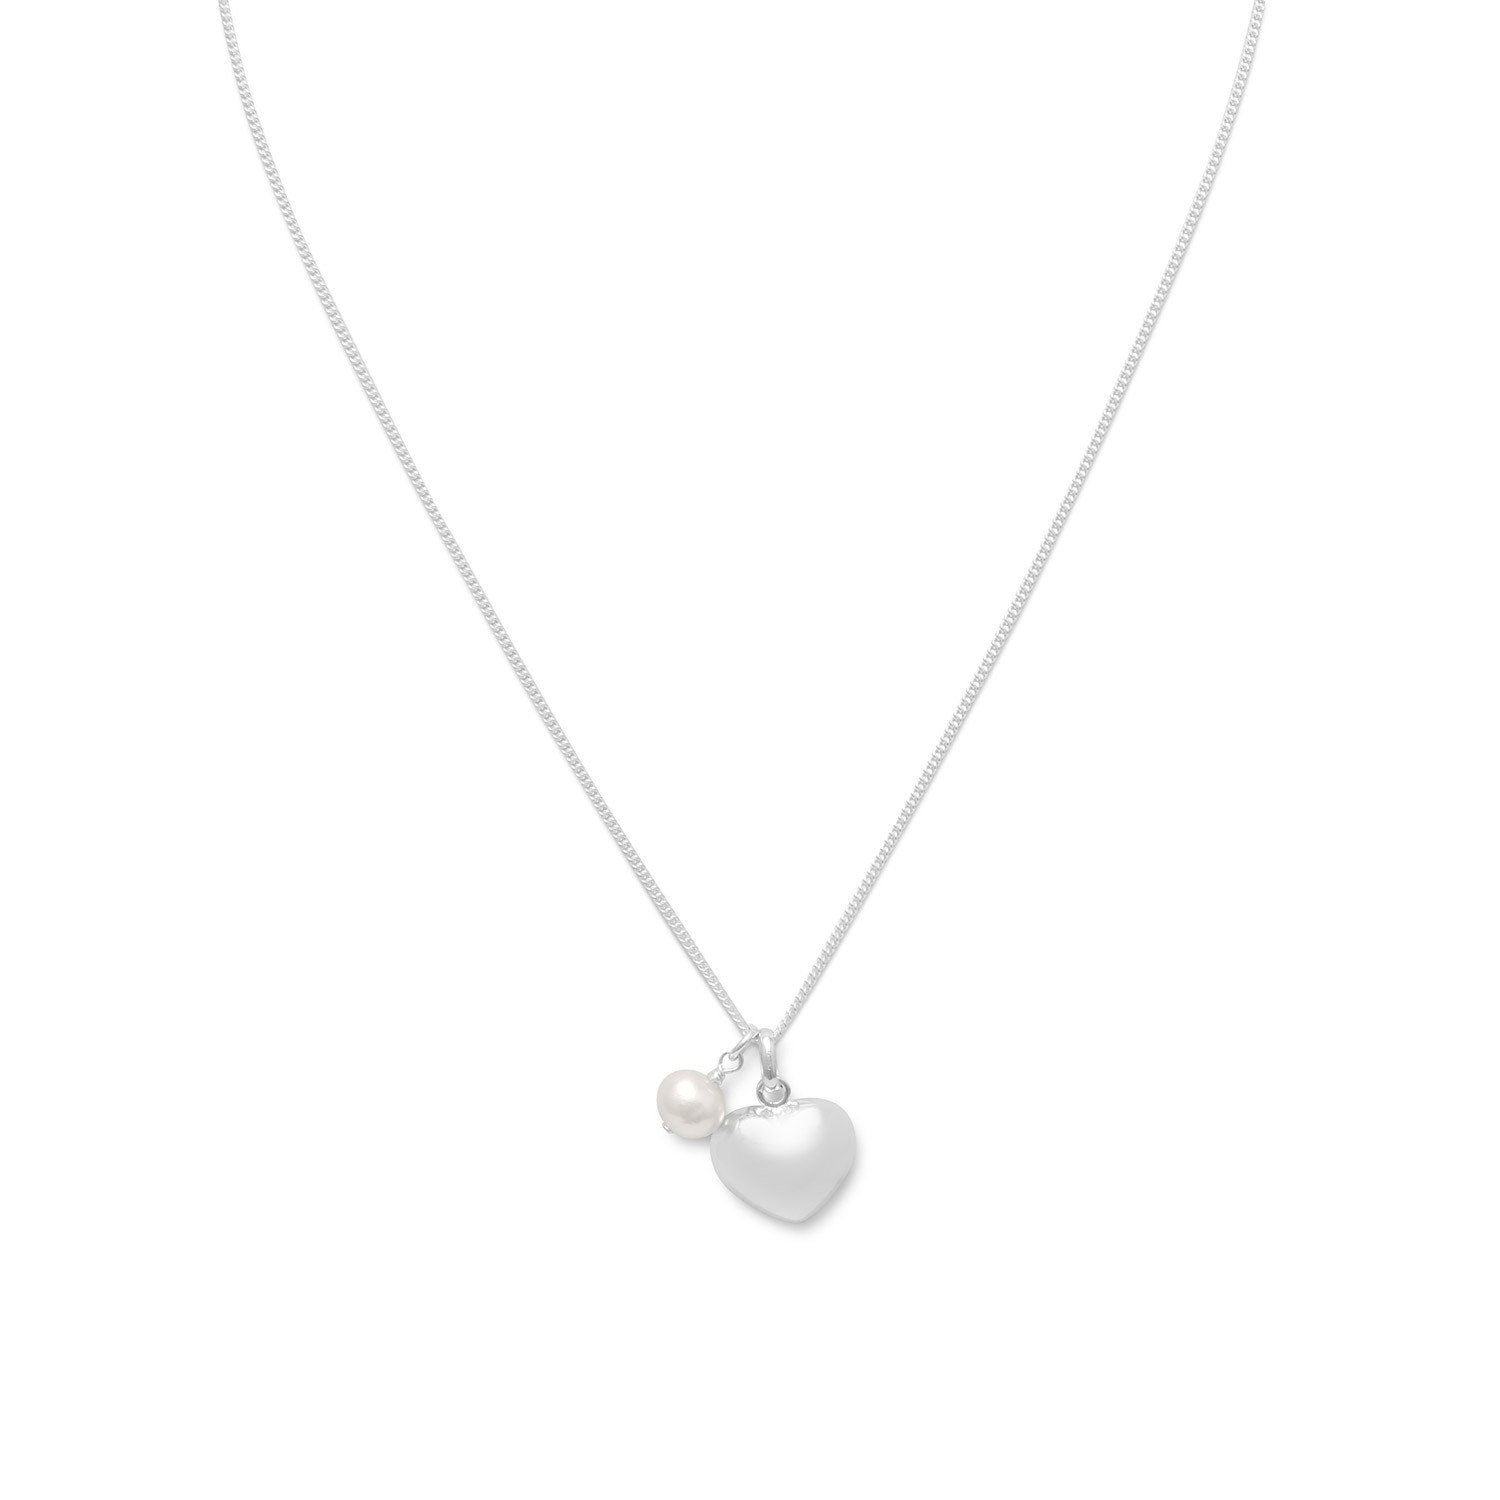 16″ Multicharm Heart & Cultured Freshwater Pearl Necklace